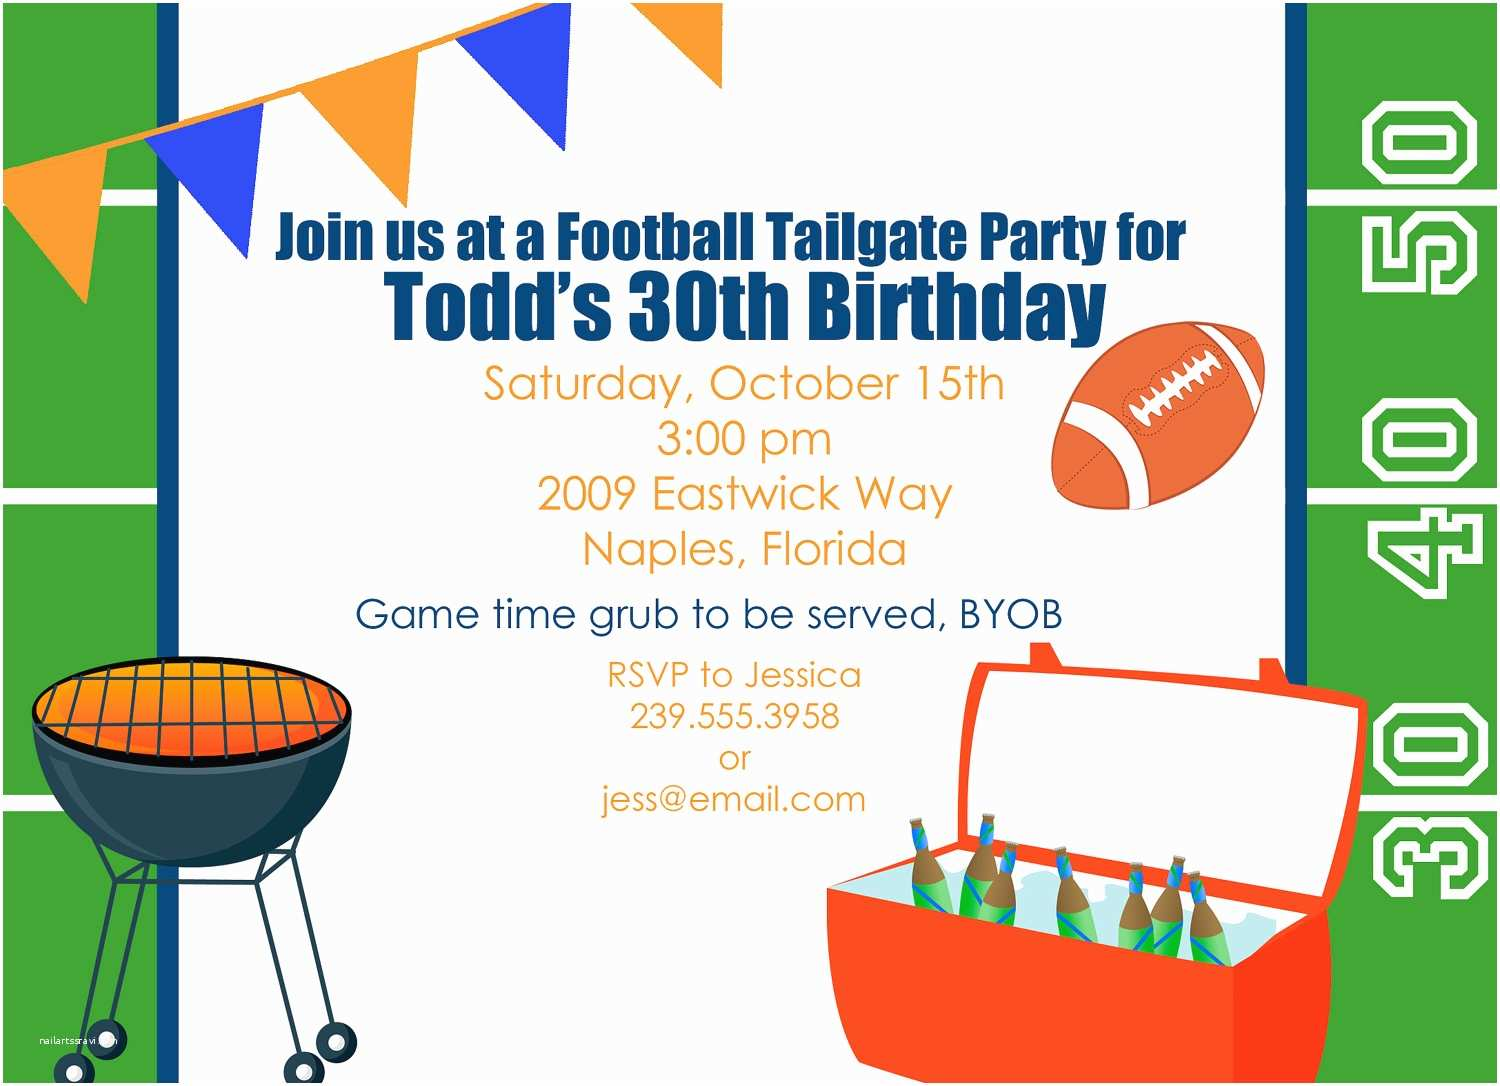 Tailgate Party Invitation Tailgate Party